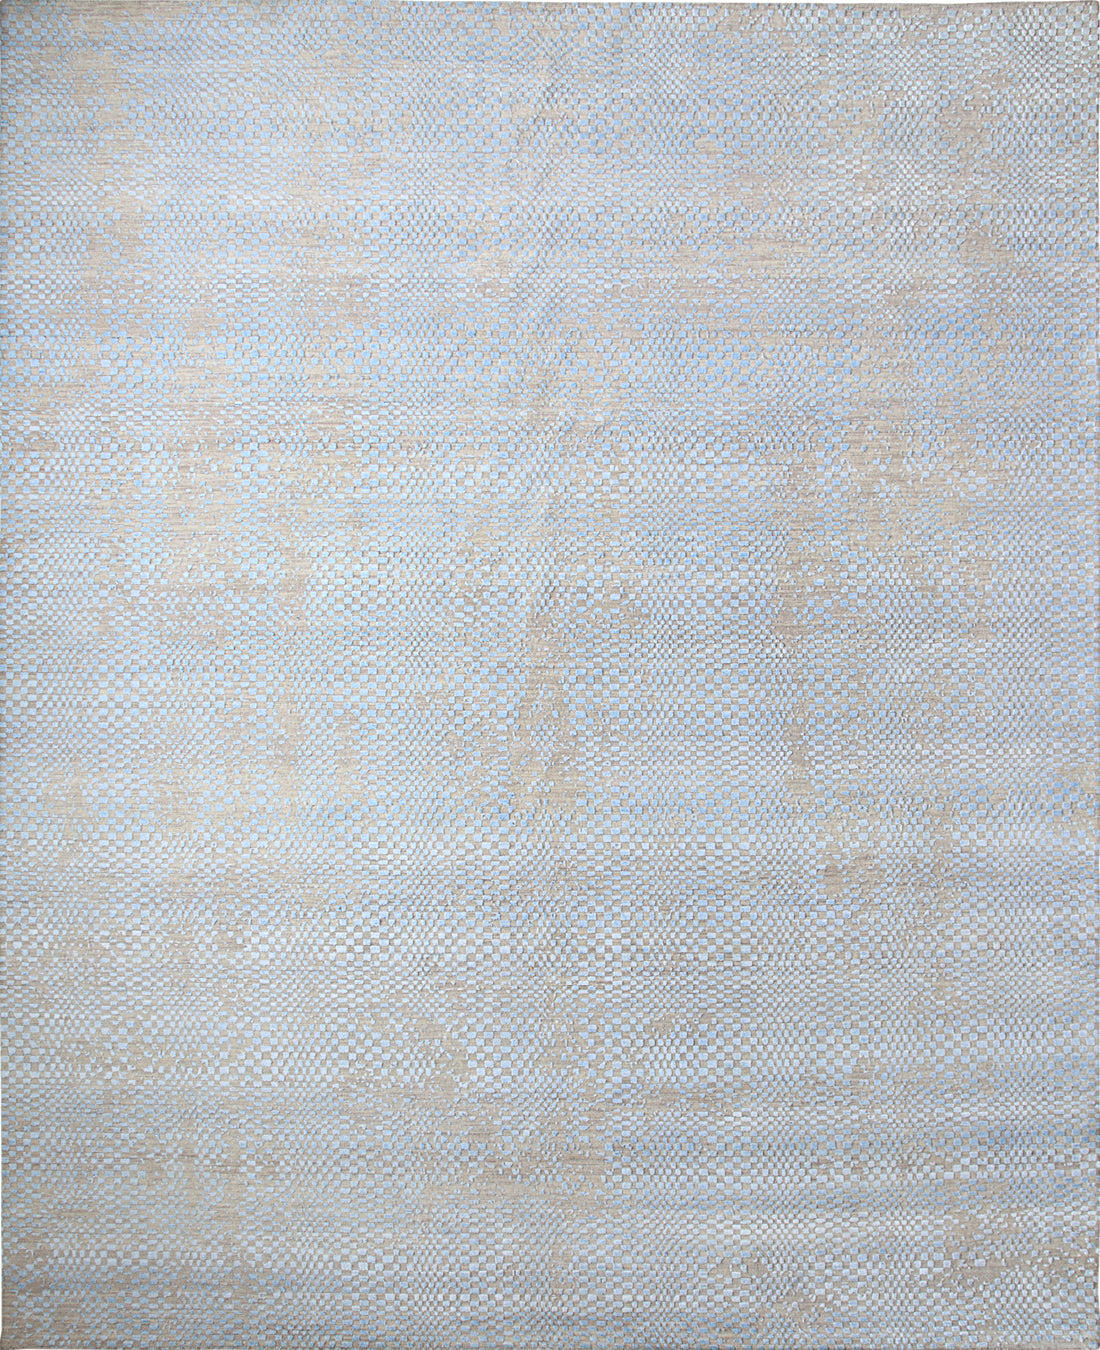 Solo Rugs Erase M8062-68 Beige Area Rug main image